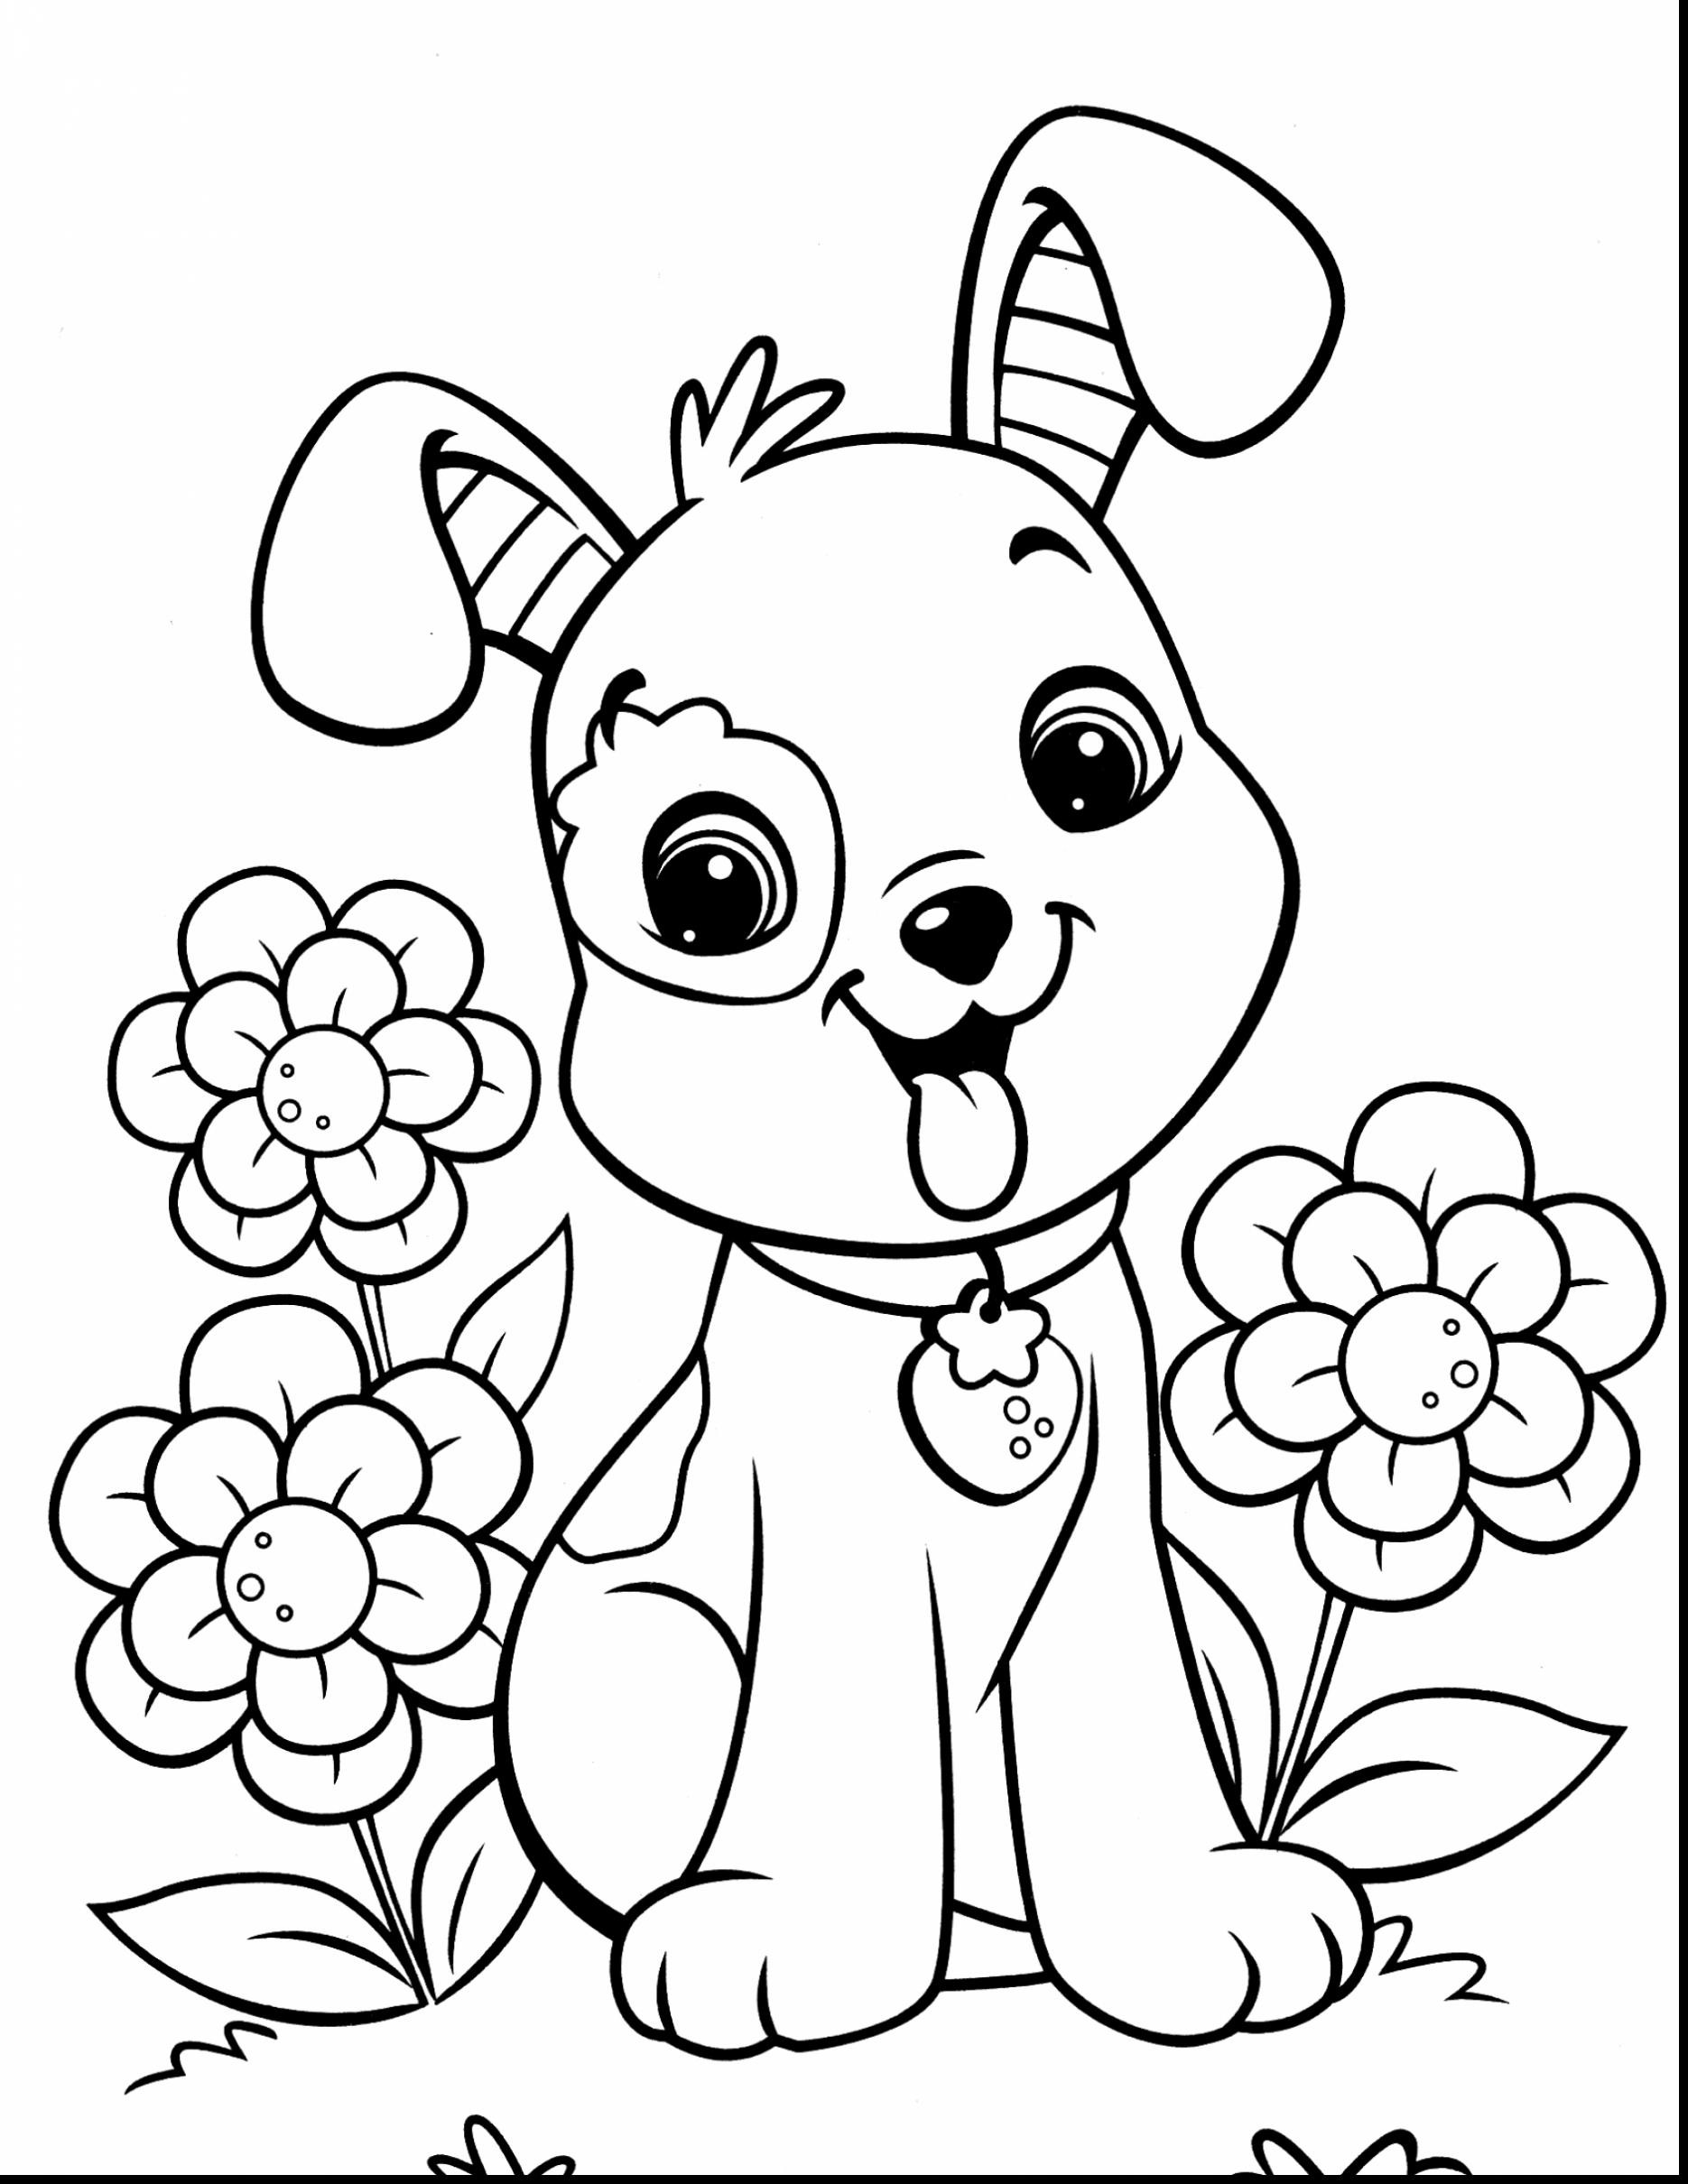 1870x2420 Dog And Cat Coloring Page Mosm